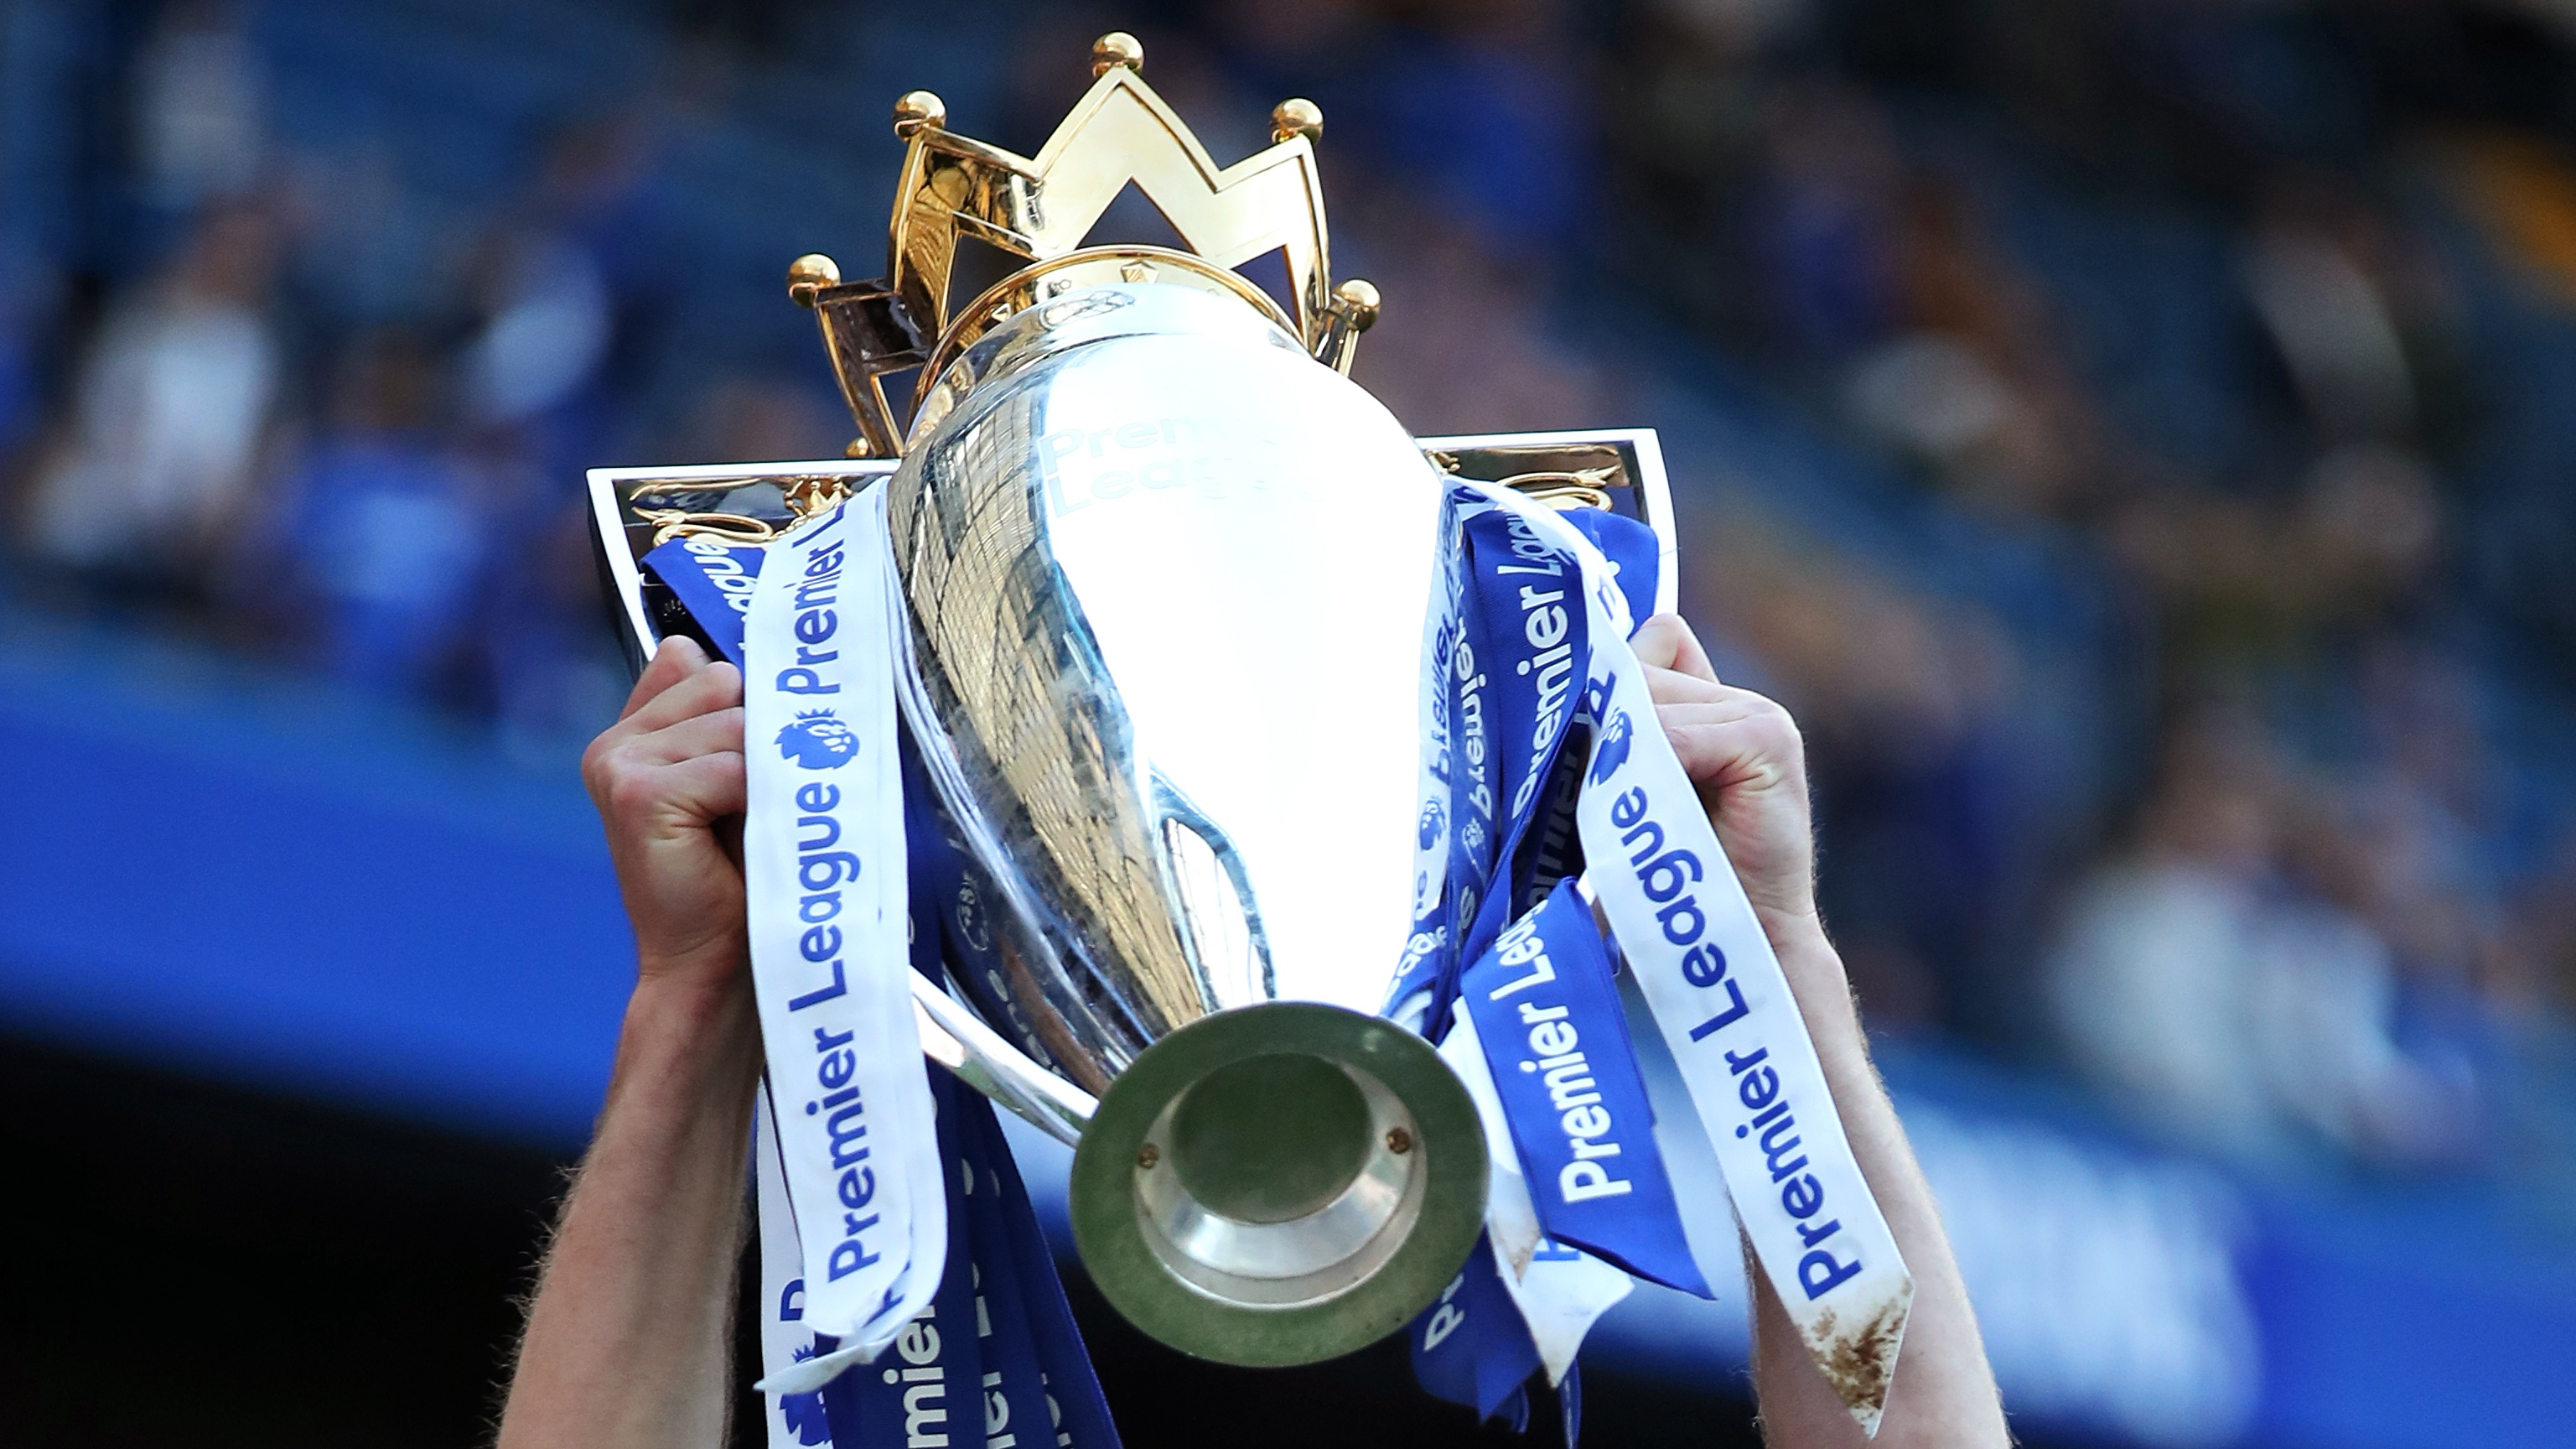 Gary Cahill lifting the Premier League trophy